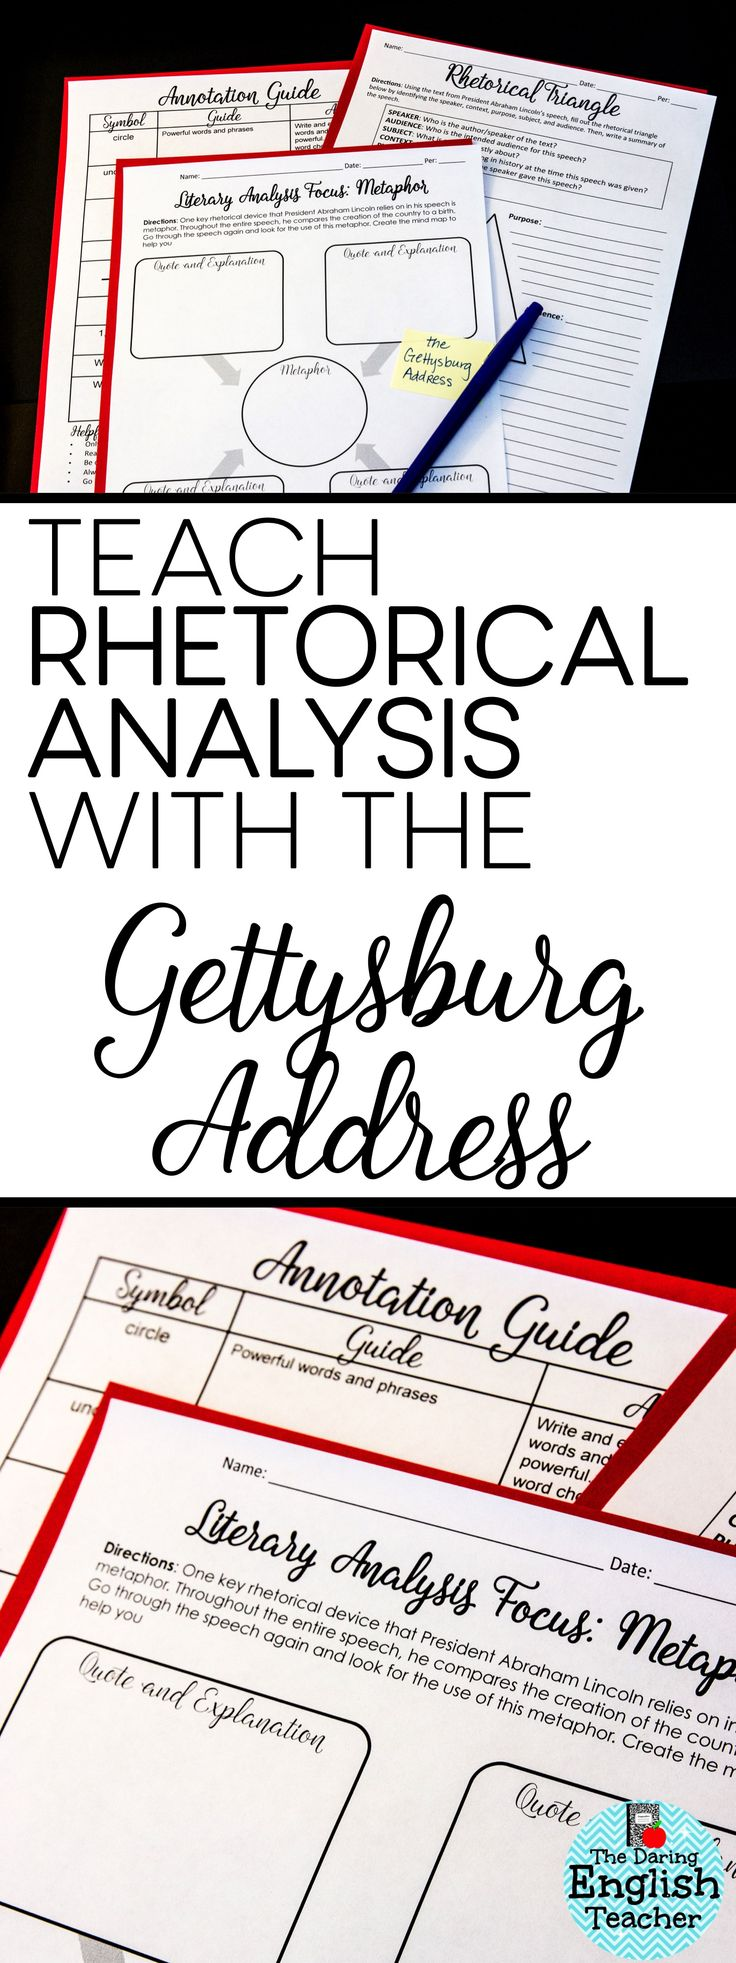 best rhetorical device ideas argumentative  teach rhetorical analysis rhetorical appeals and rhetorical devices using the gettysburg address american